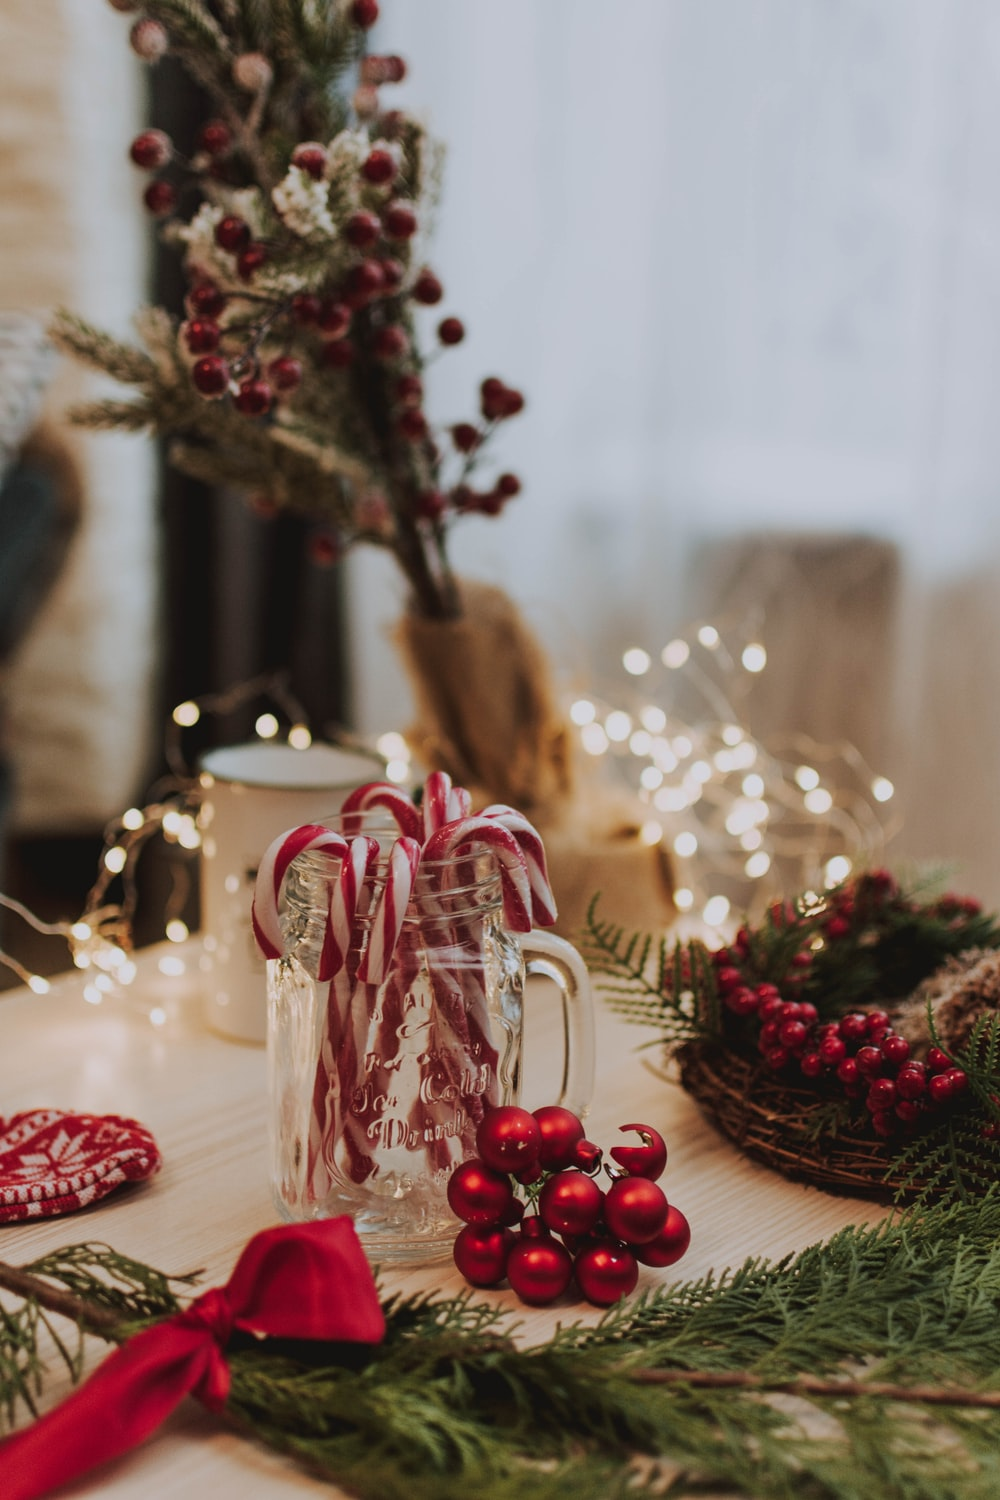 candy cane in clear glass jar near red baubles, lighted string lights, and white mug